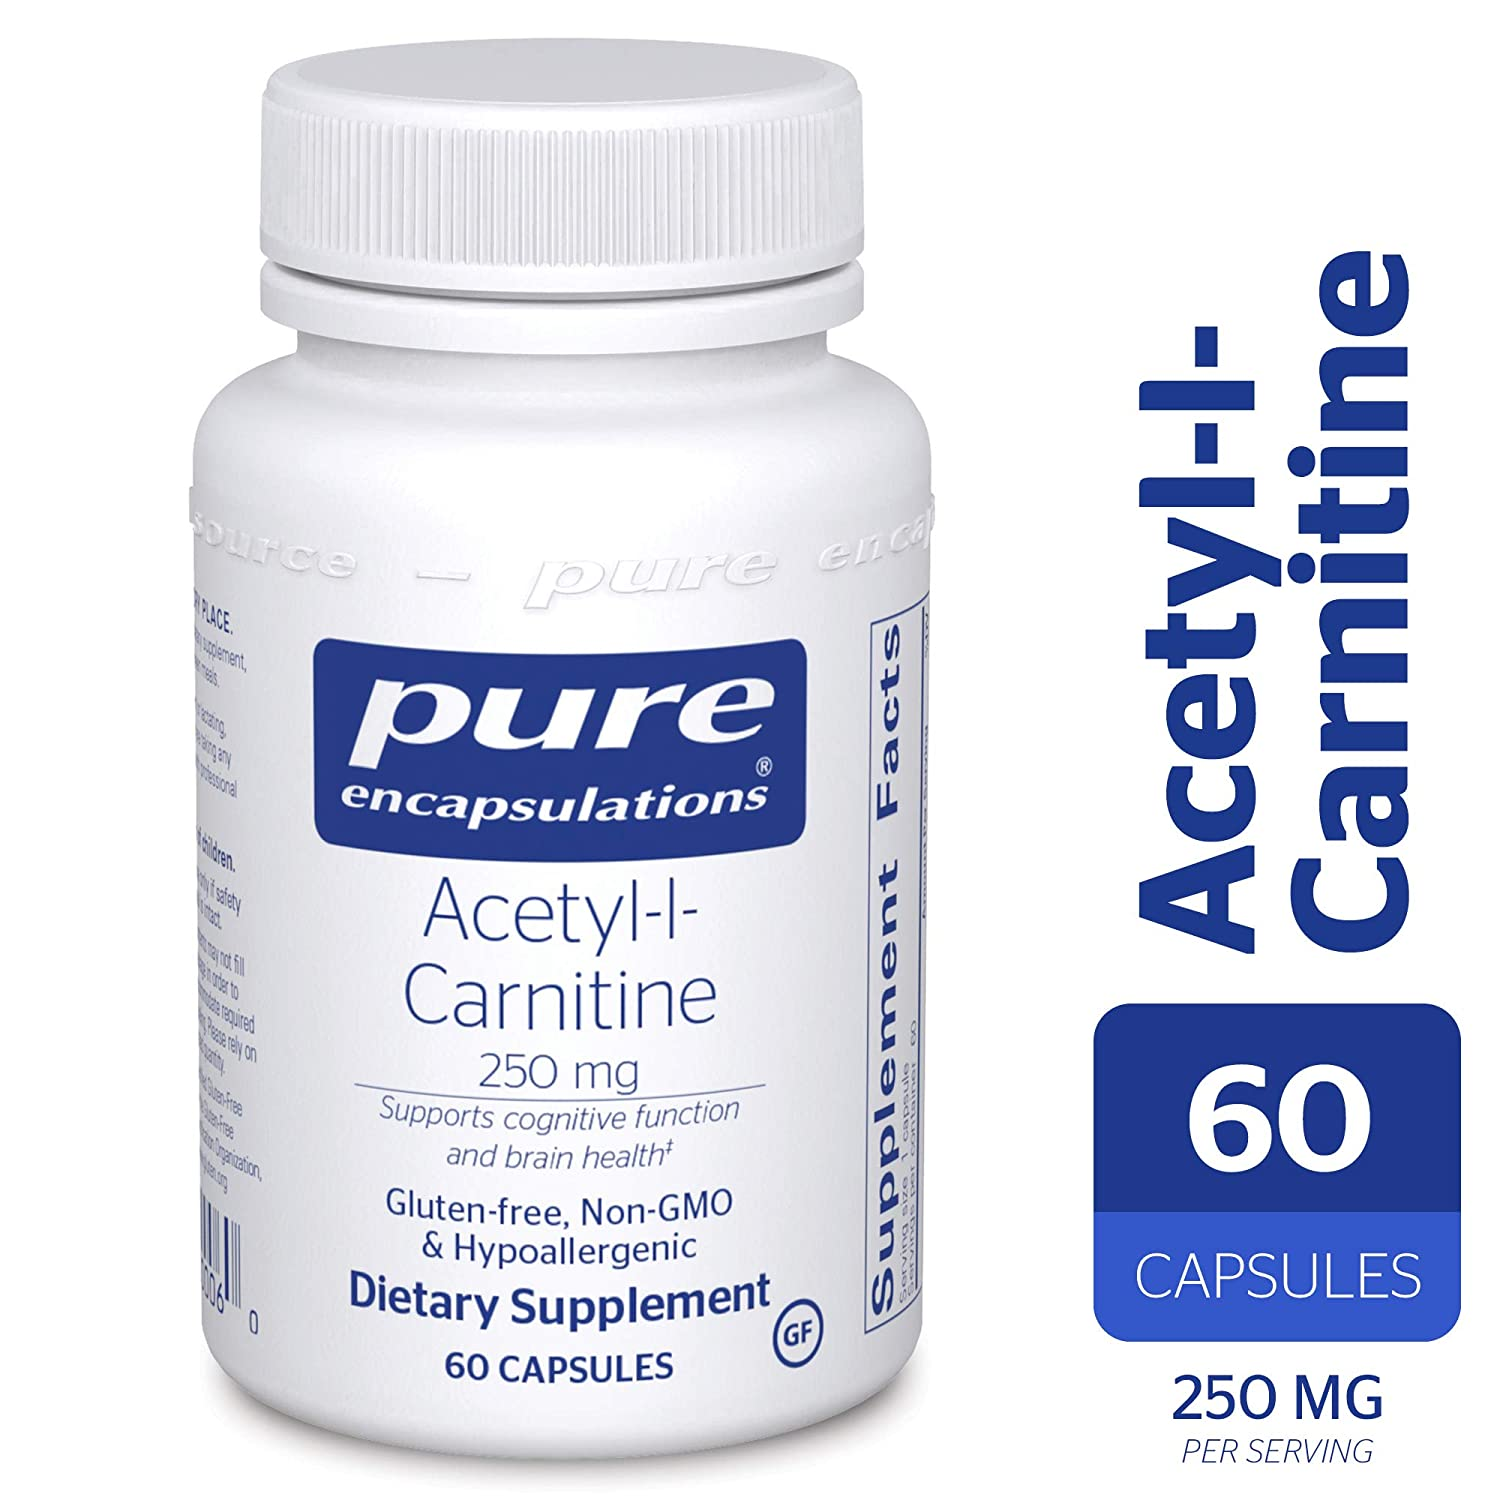 Pure Encapsulations – Acetyl-l-Carnitine 250 mg – Hypoallergenic Supplement to Promote Memory and Attention* – 60 Capsules